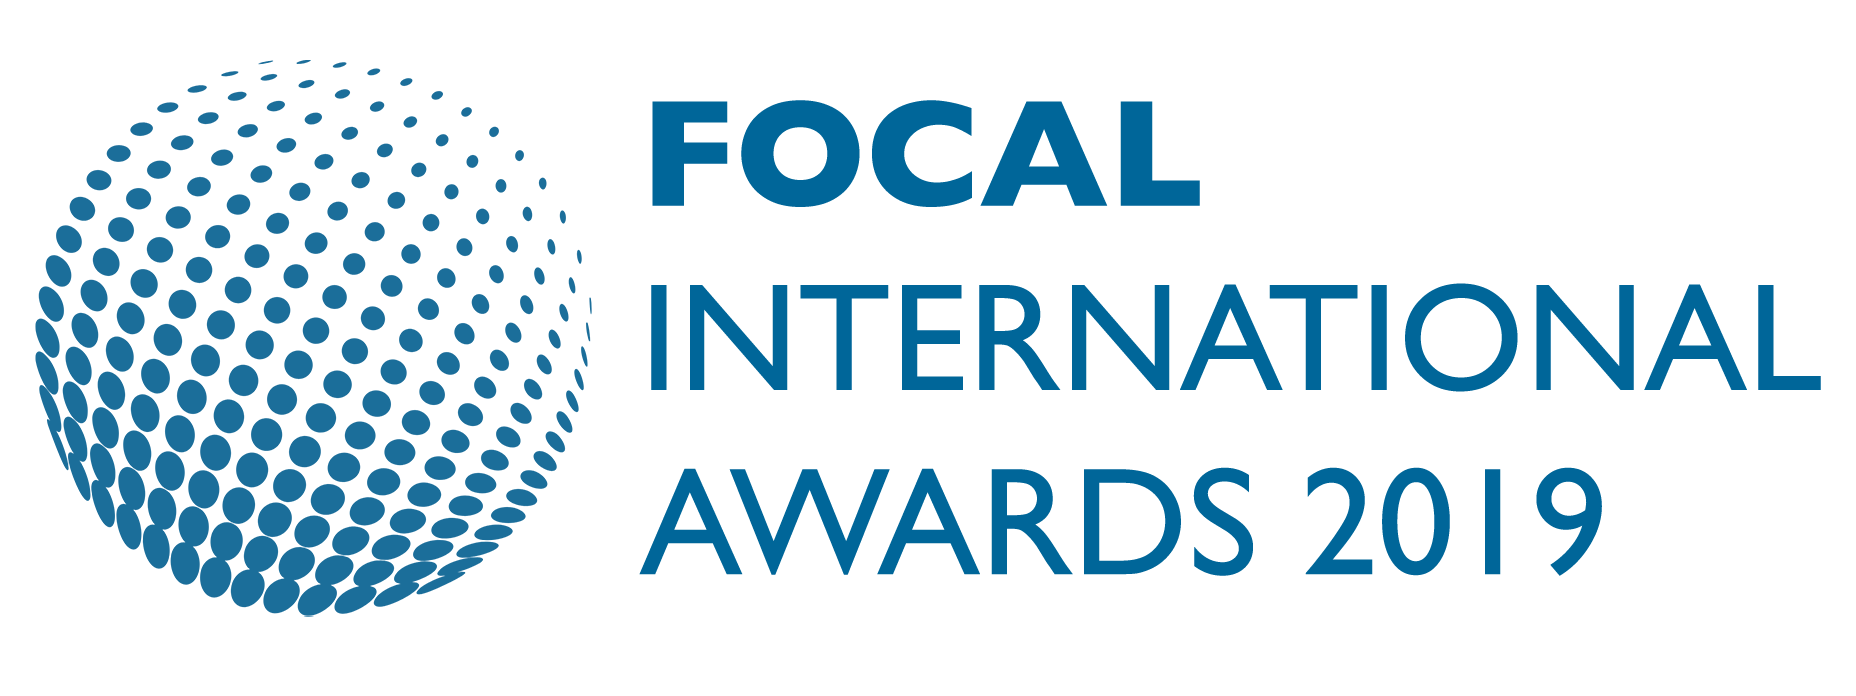 focal awards 2019 resized.png